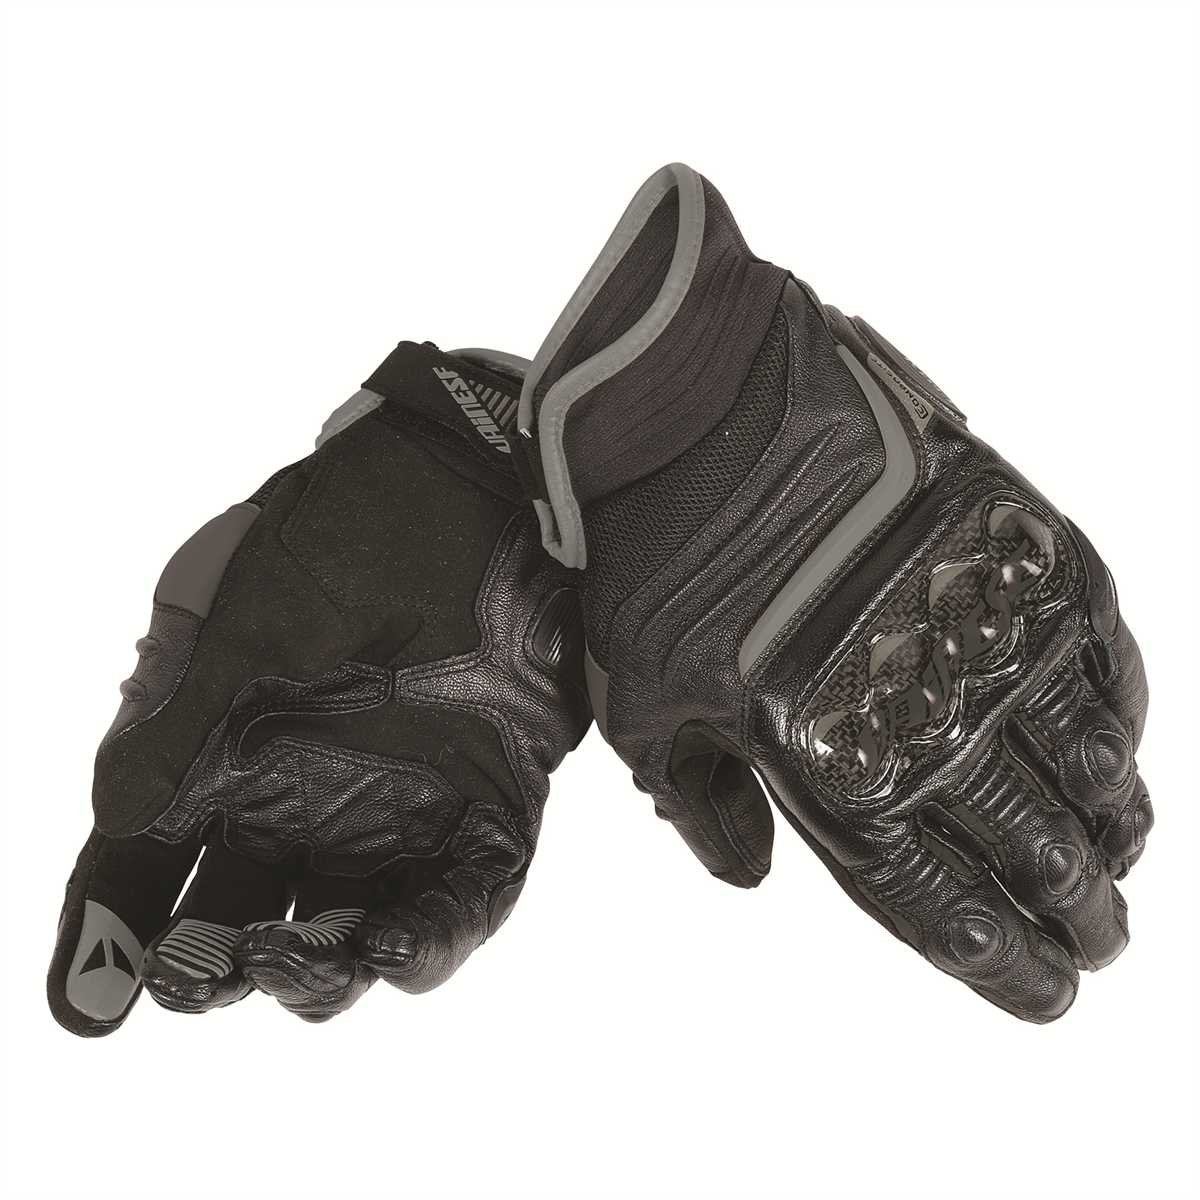 Leather motorcycle gloves best - Best Leather Motorcycle Gloves